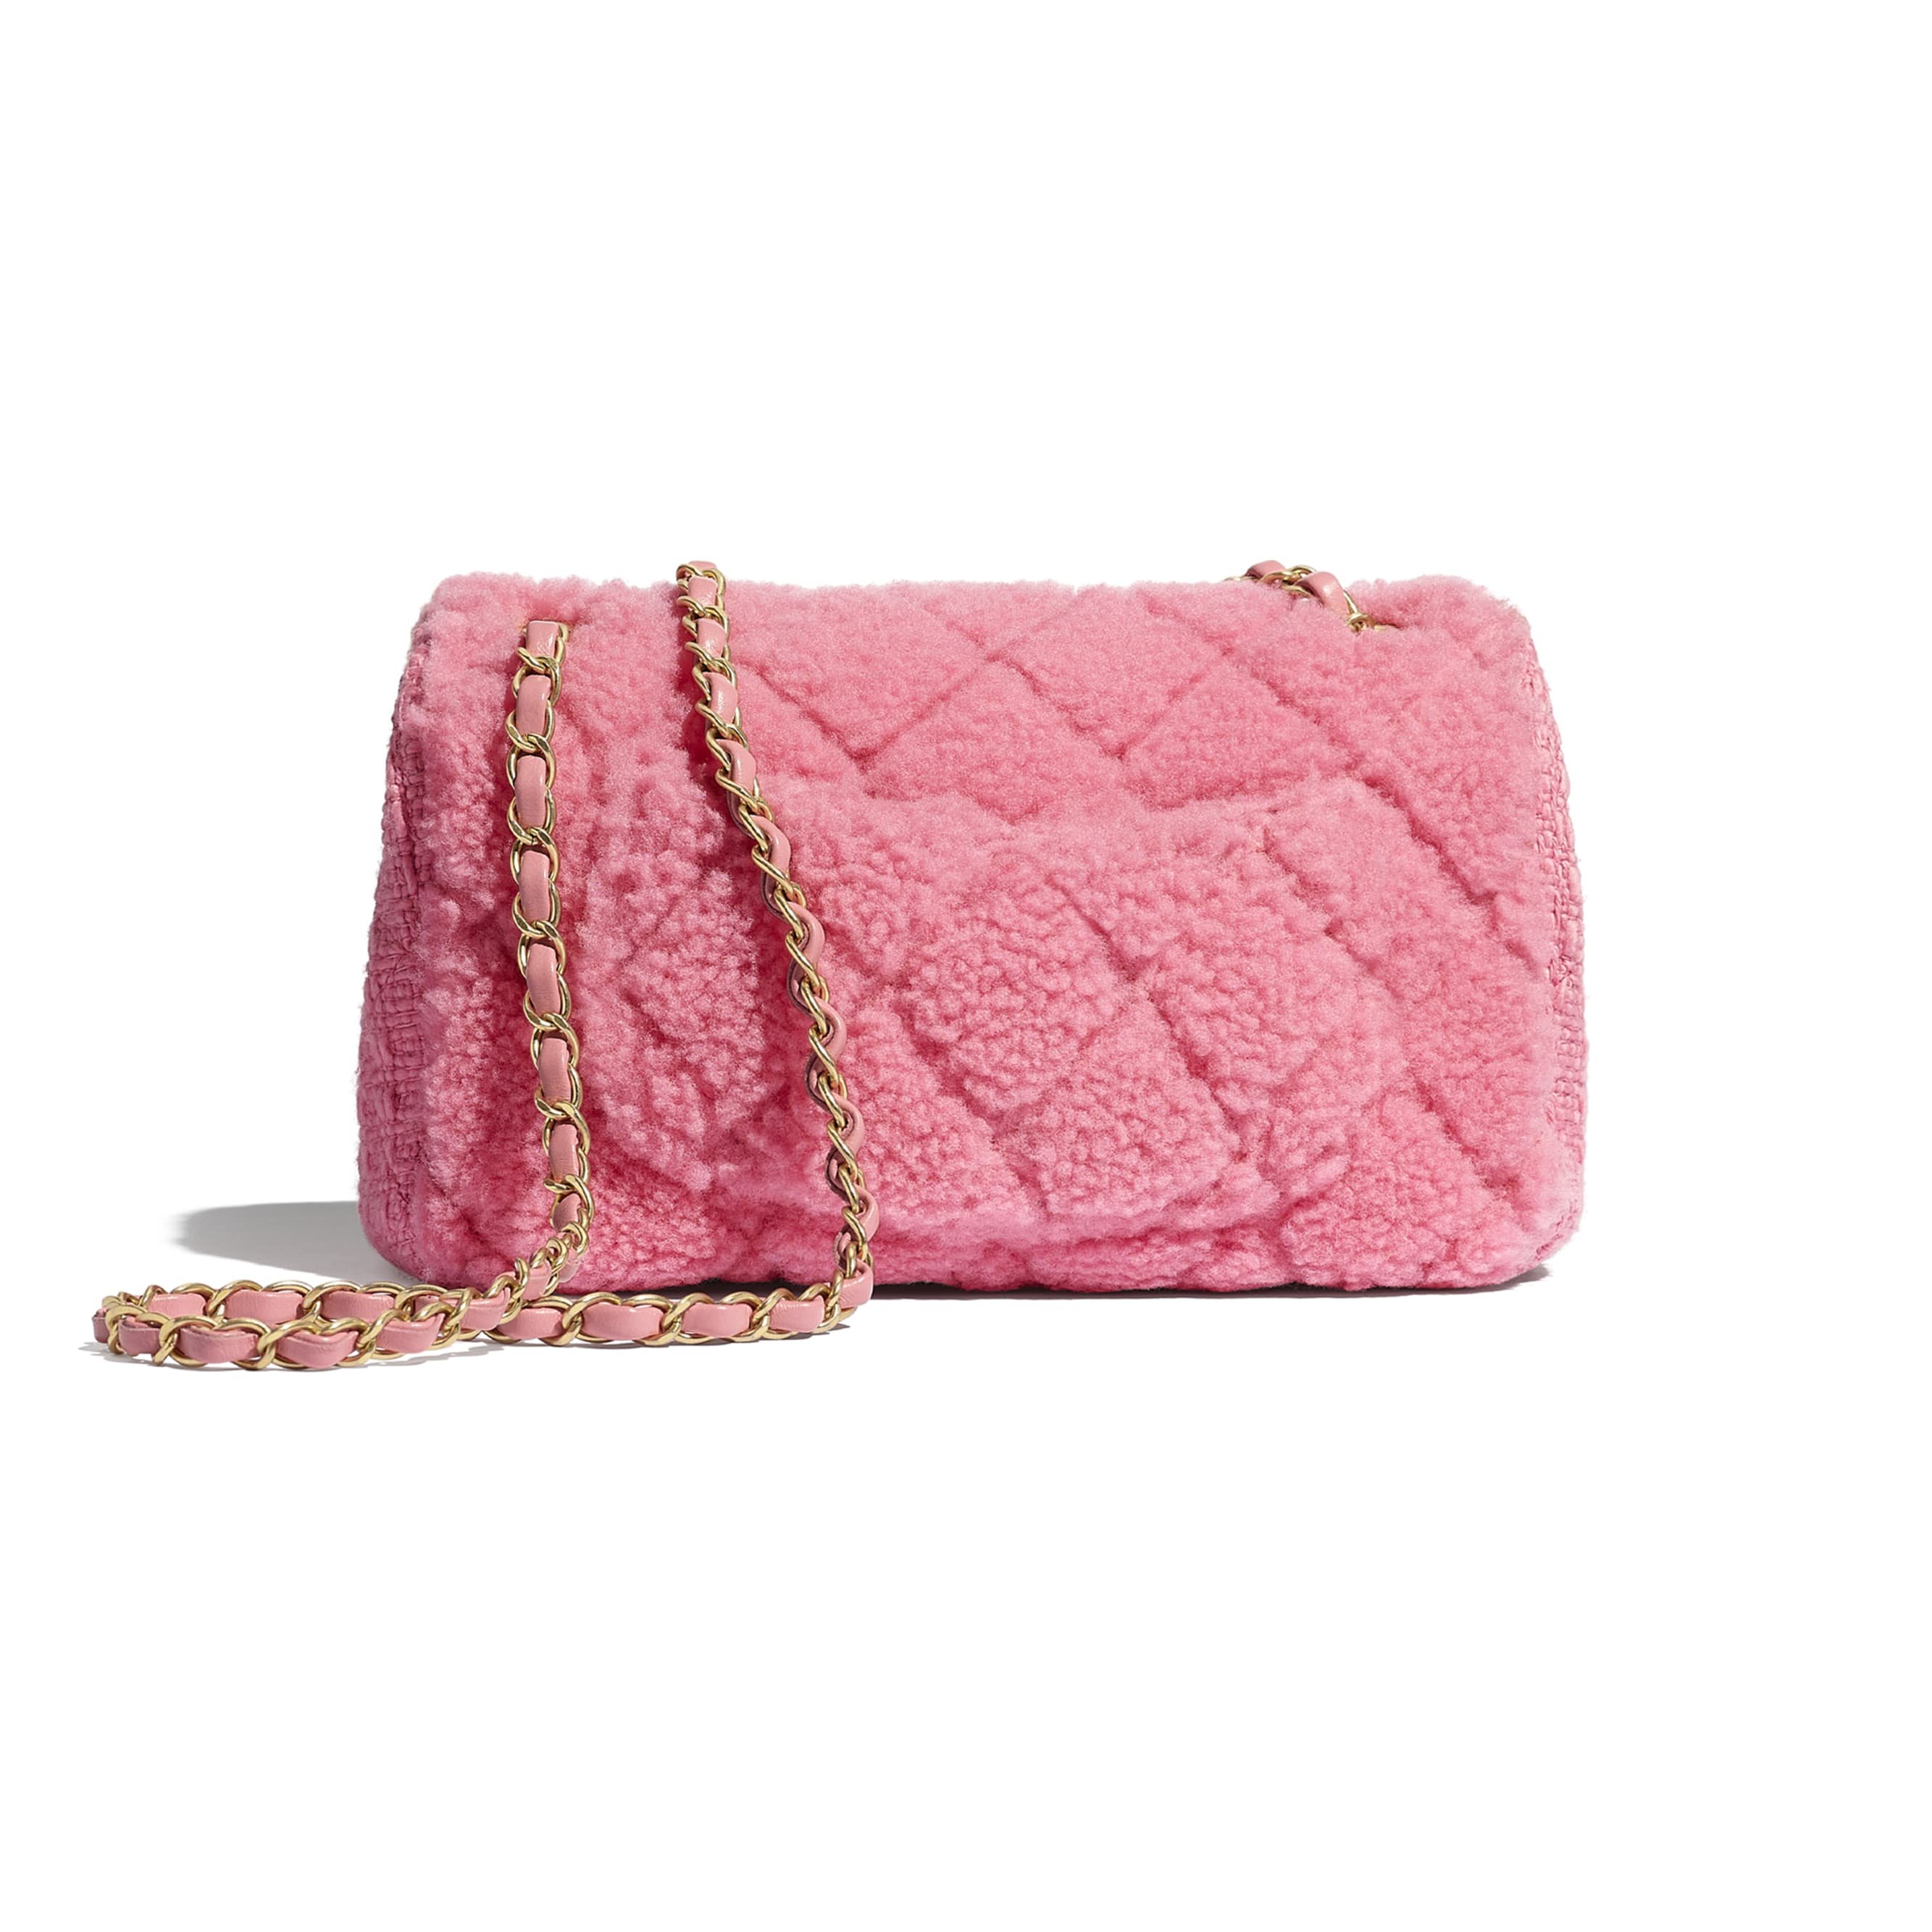 Flap Bag - Pink - Shearling Sheepskin, Tweed & Gold-Tone Metal - CHANEL - Alternative view - see standard sized version